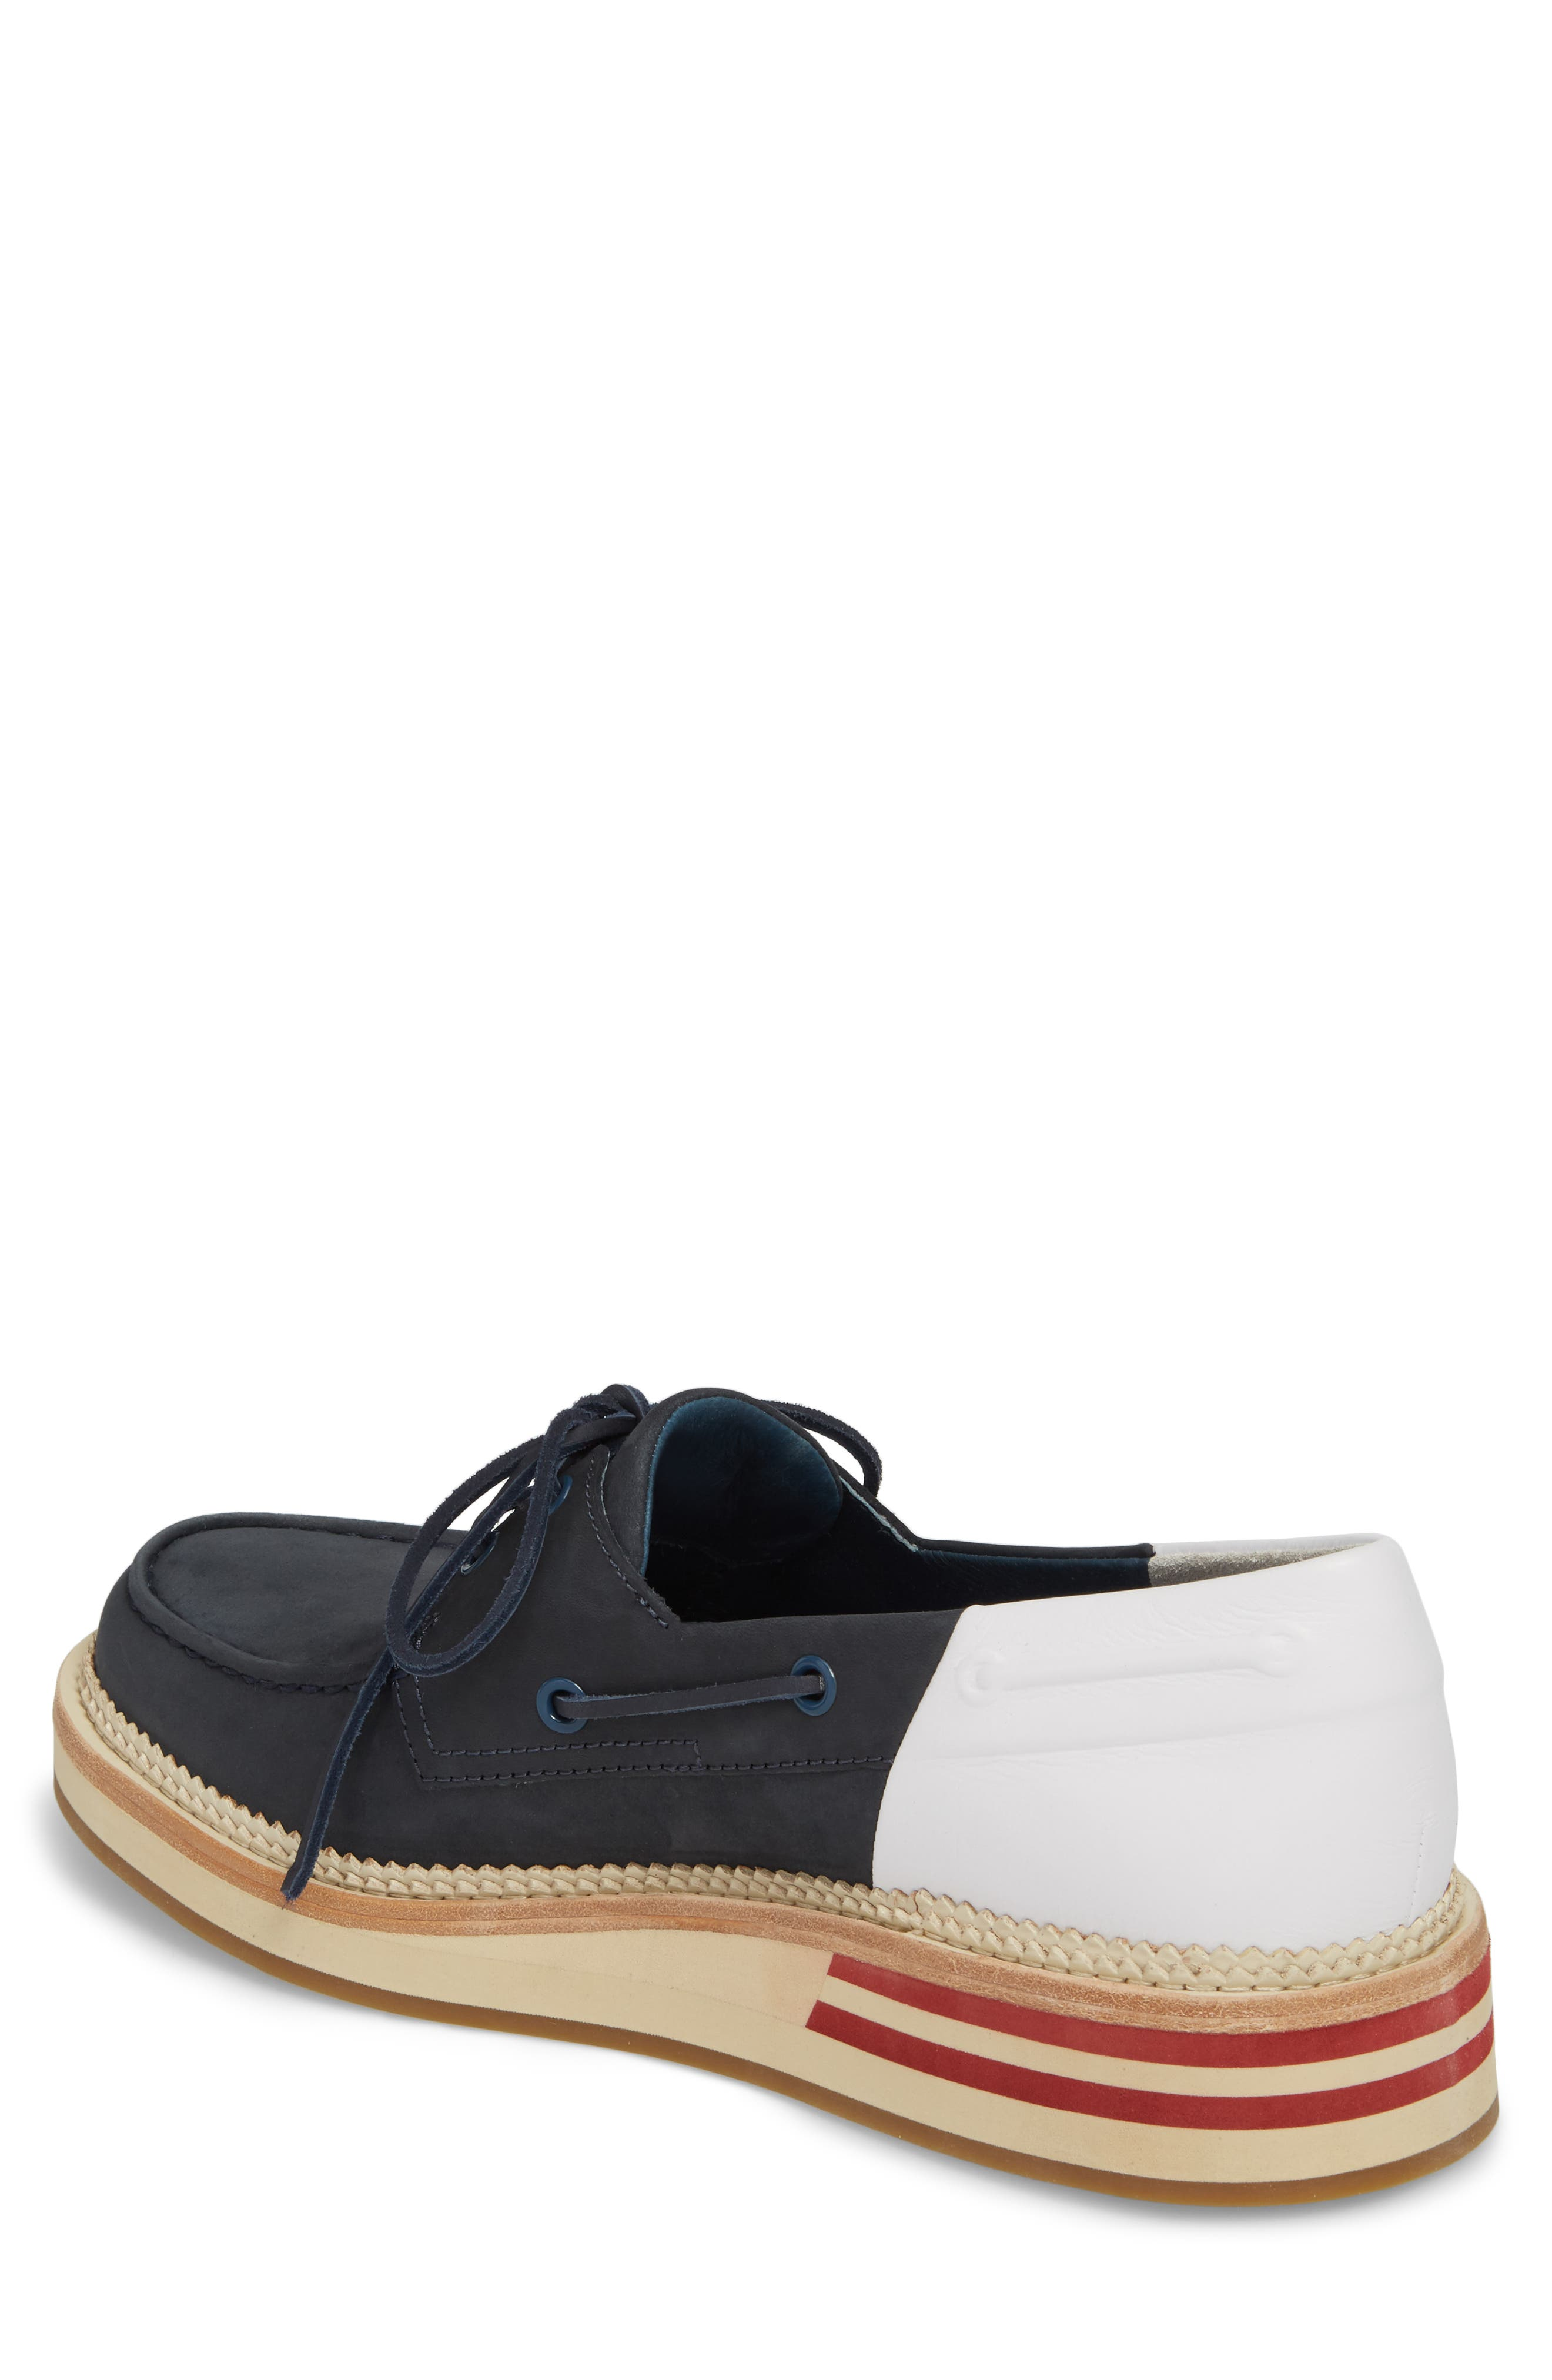 Cloud Colorblocked Boat Shoe,                             Alternate thumbnail 2, color,                             Navy/ White